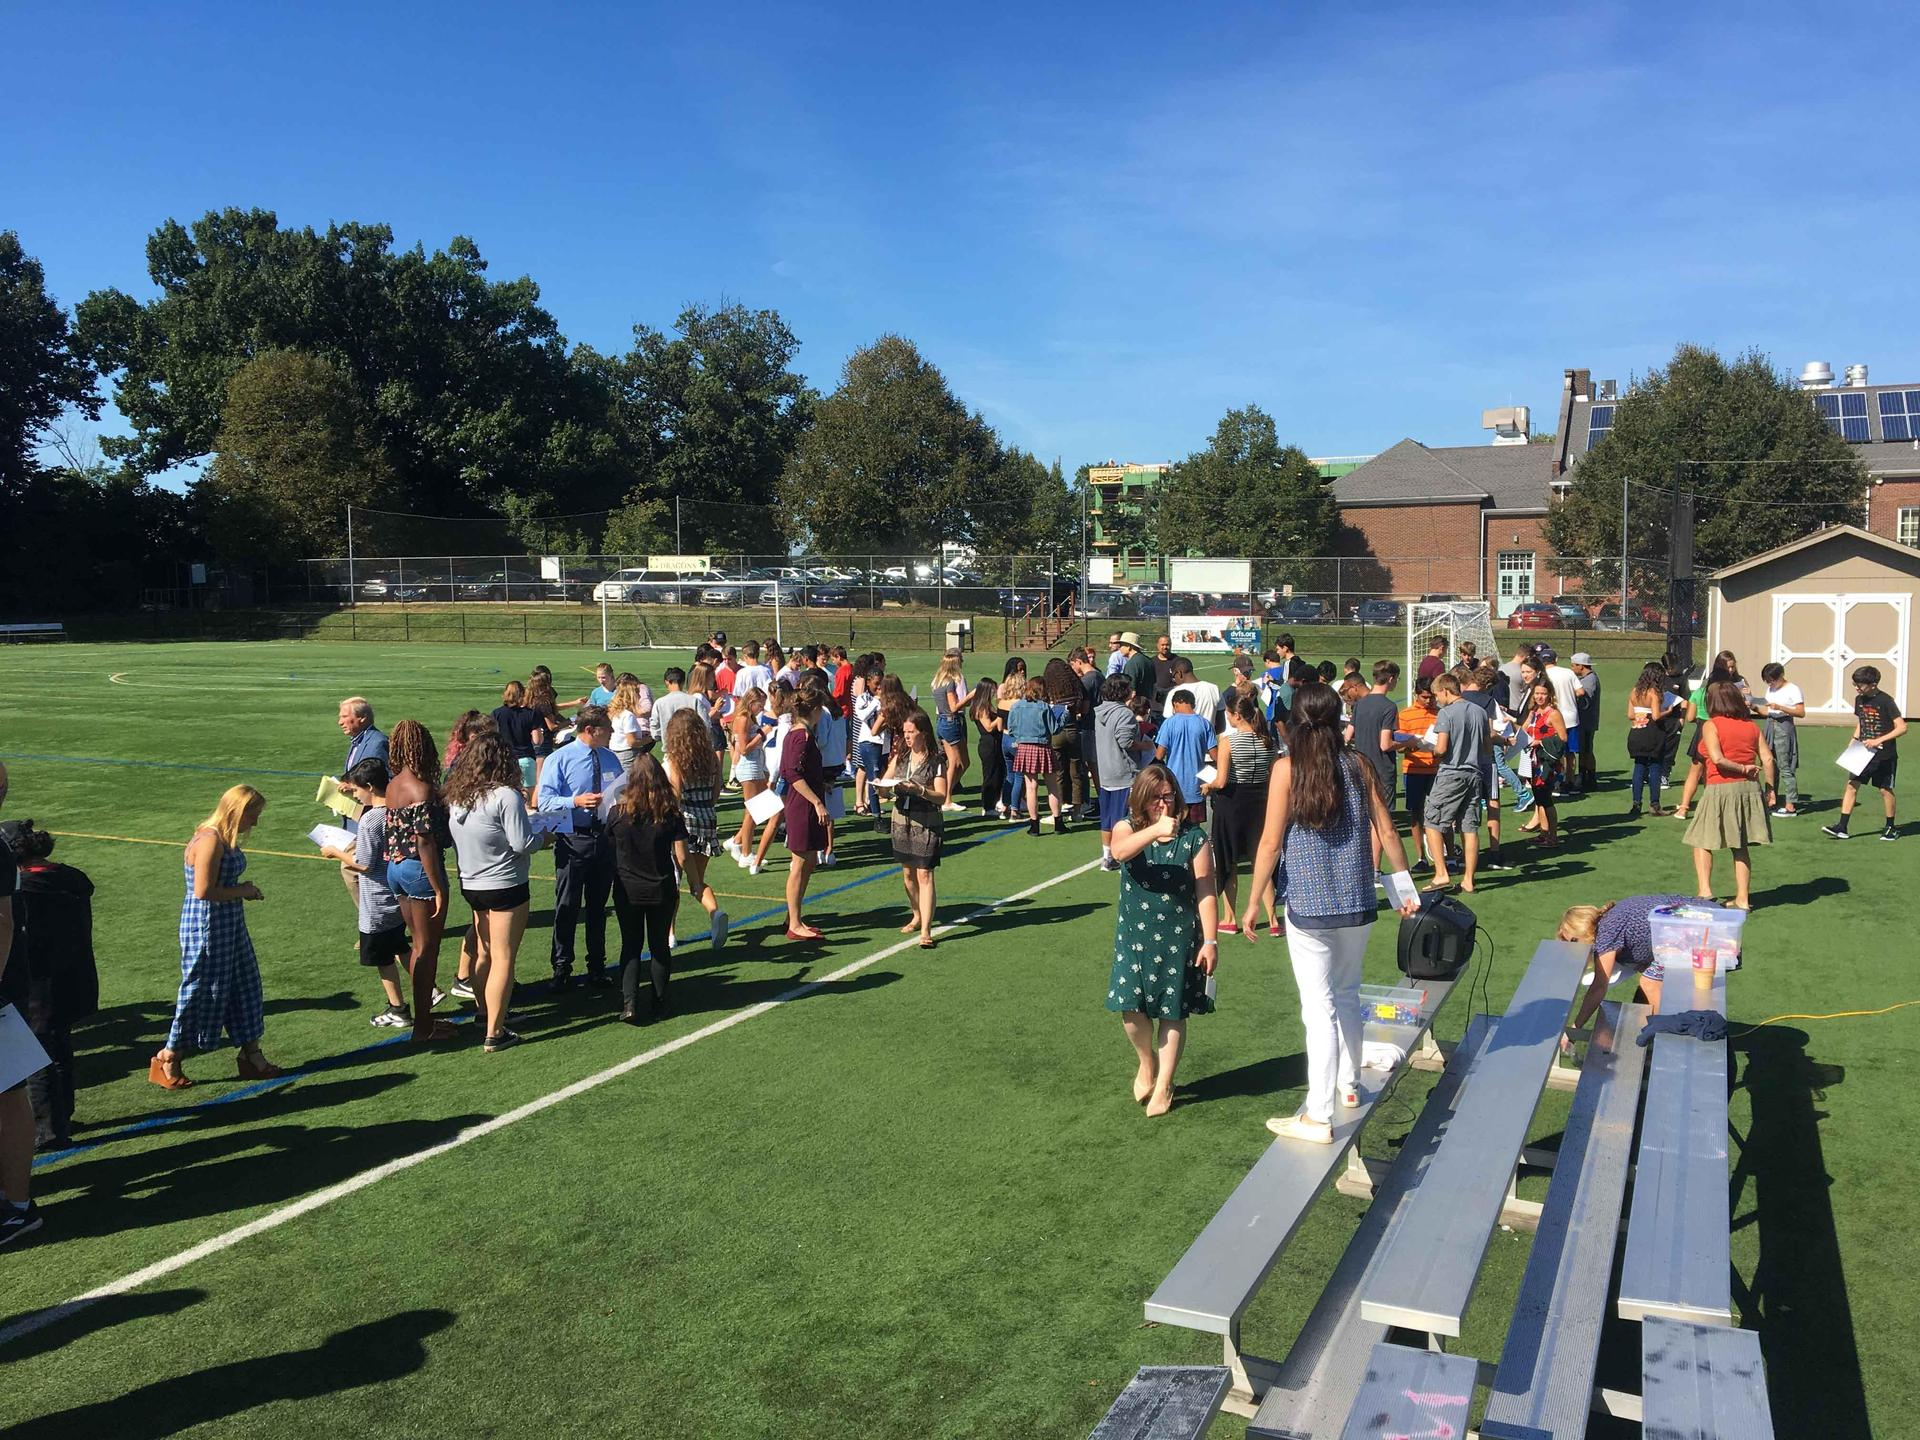 Team building on the turf field